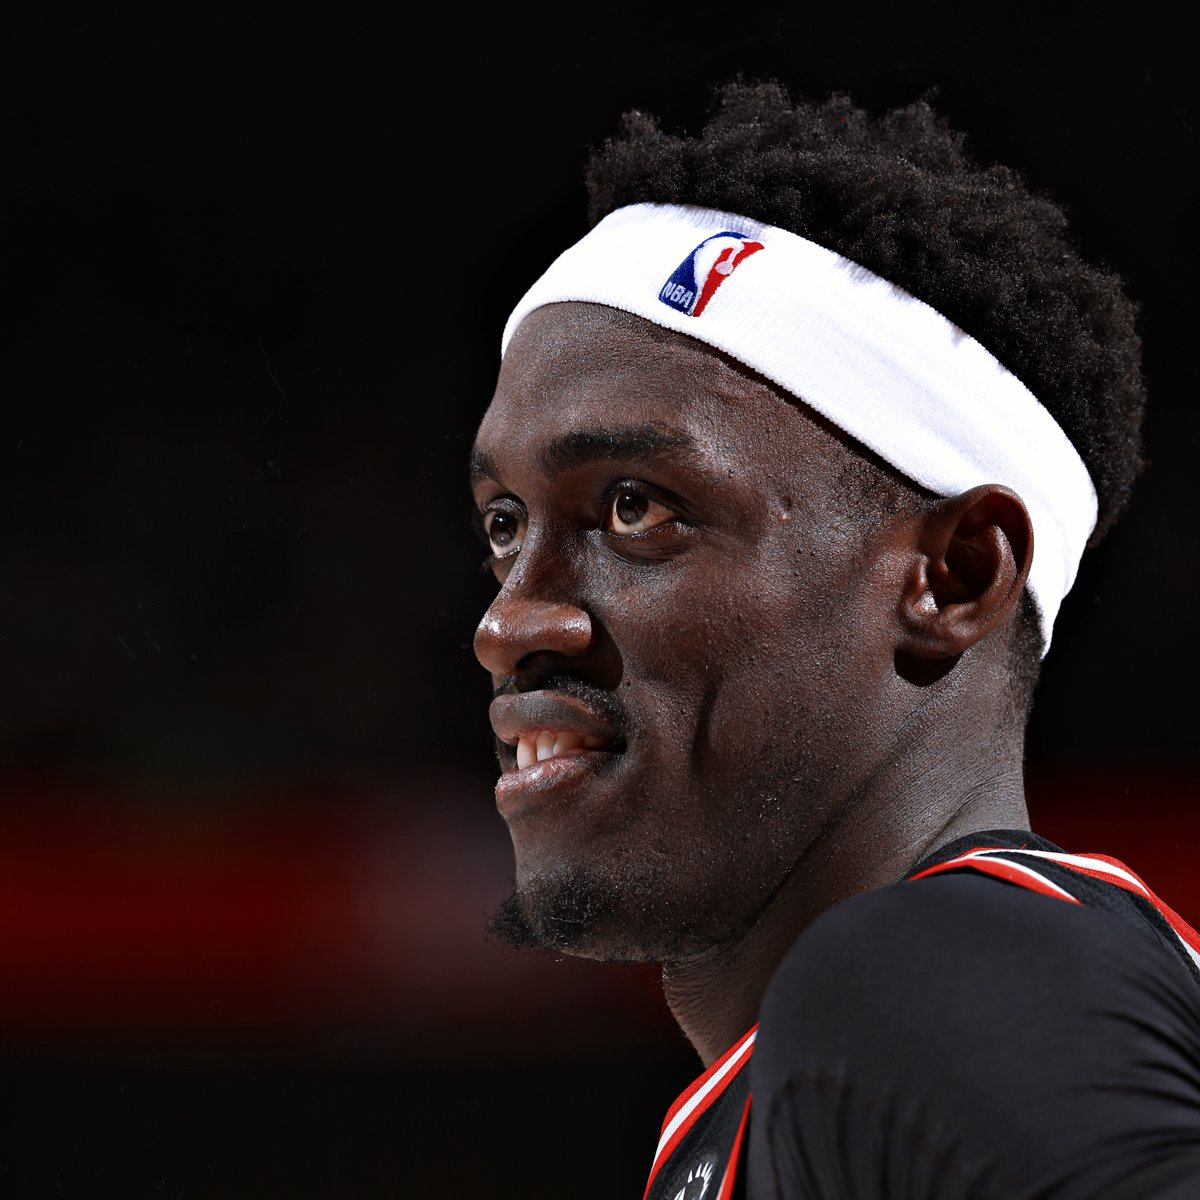 Are you not entertained?   36 Pts - 6 Reb - 4 3pm - 54 FG%  @pskills43 | #WeTheNorth